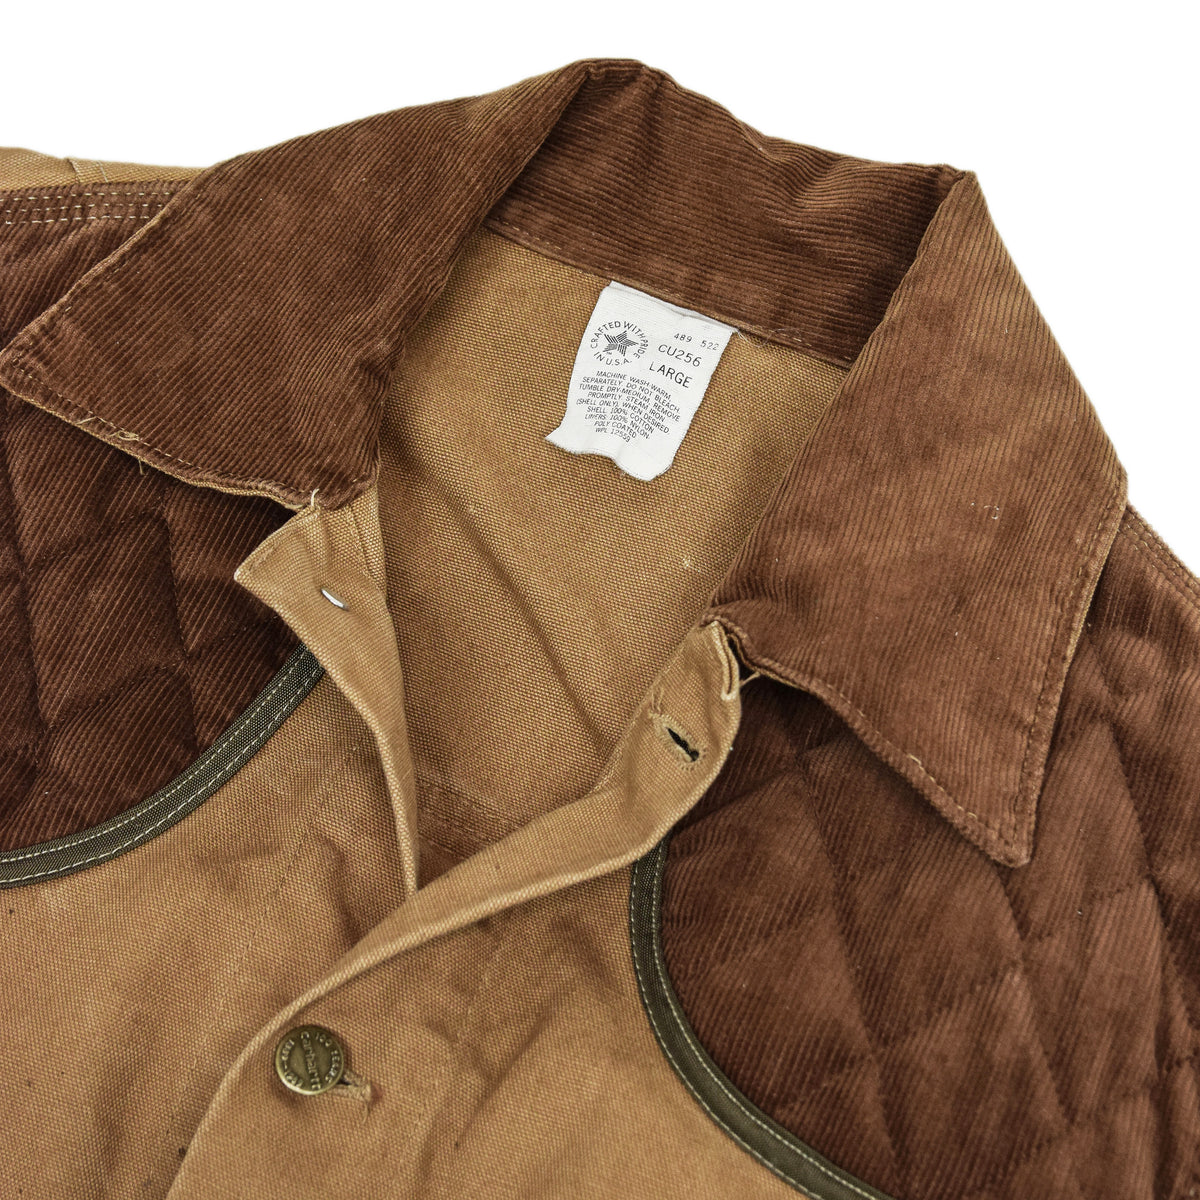 Vintage 80s Carhartt 100 Years Hunting Duck Canvas Shooting Jacket L collar